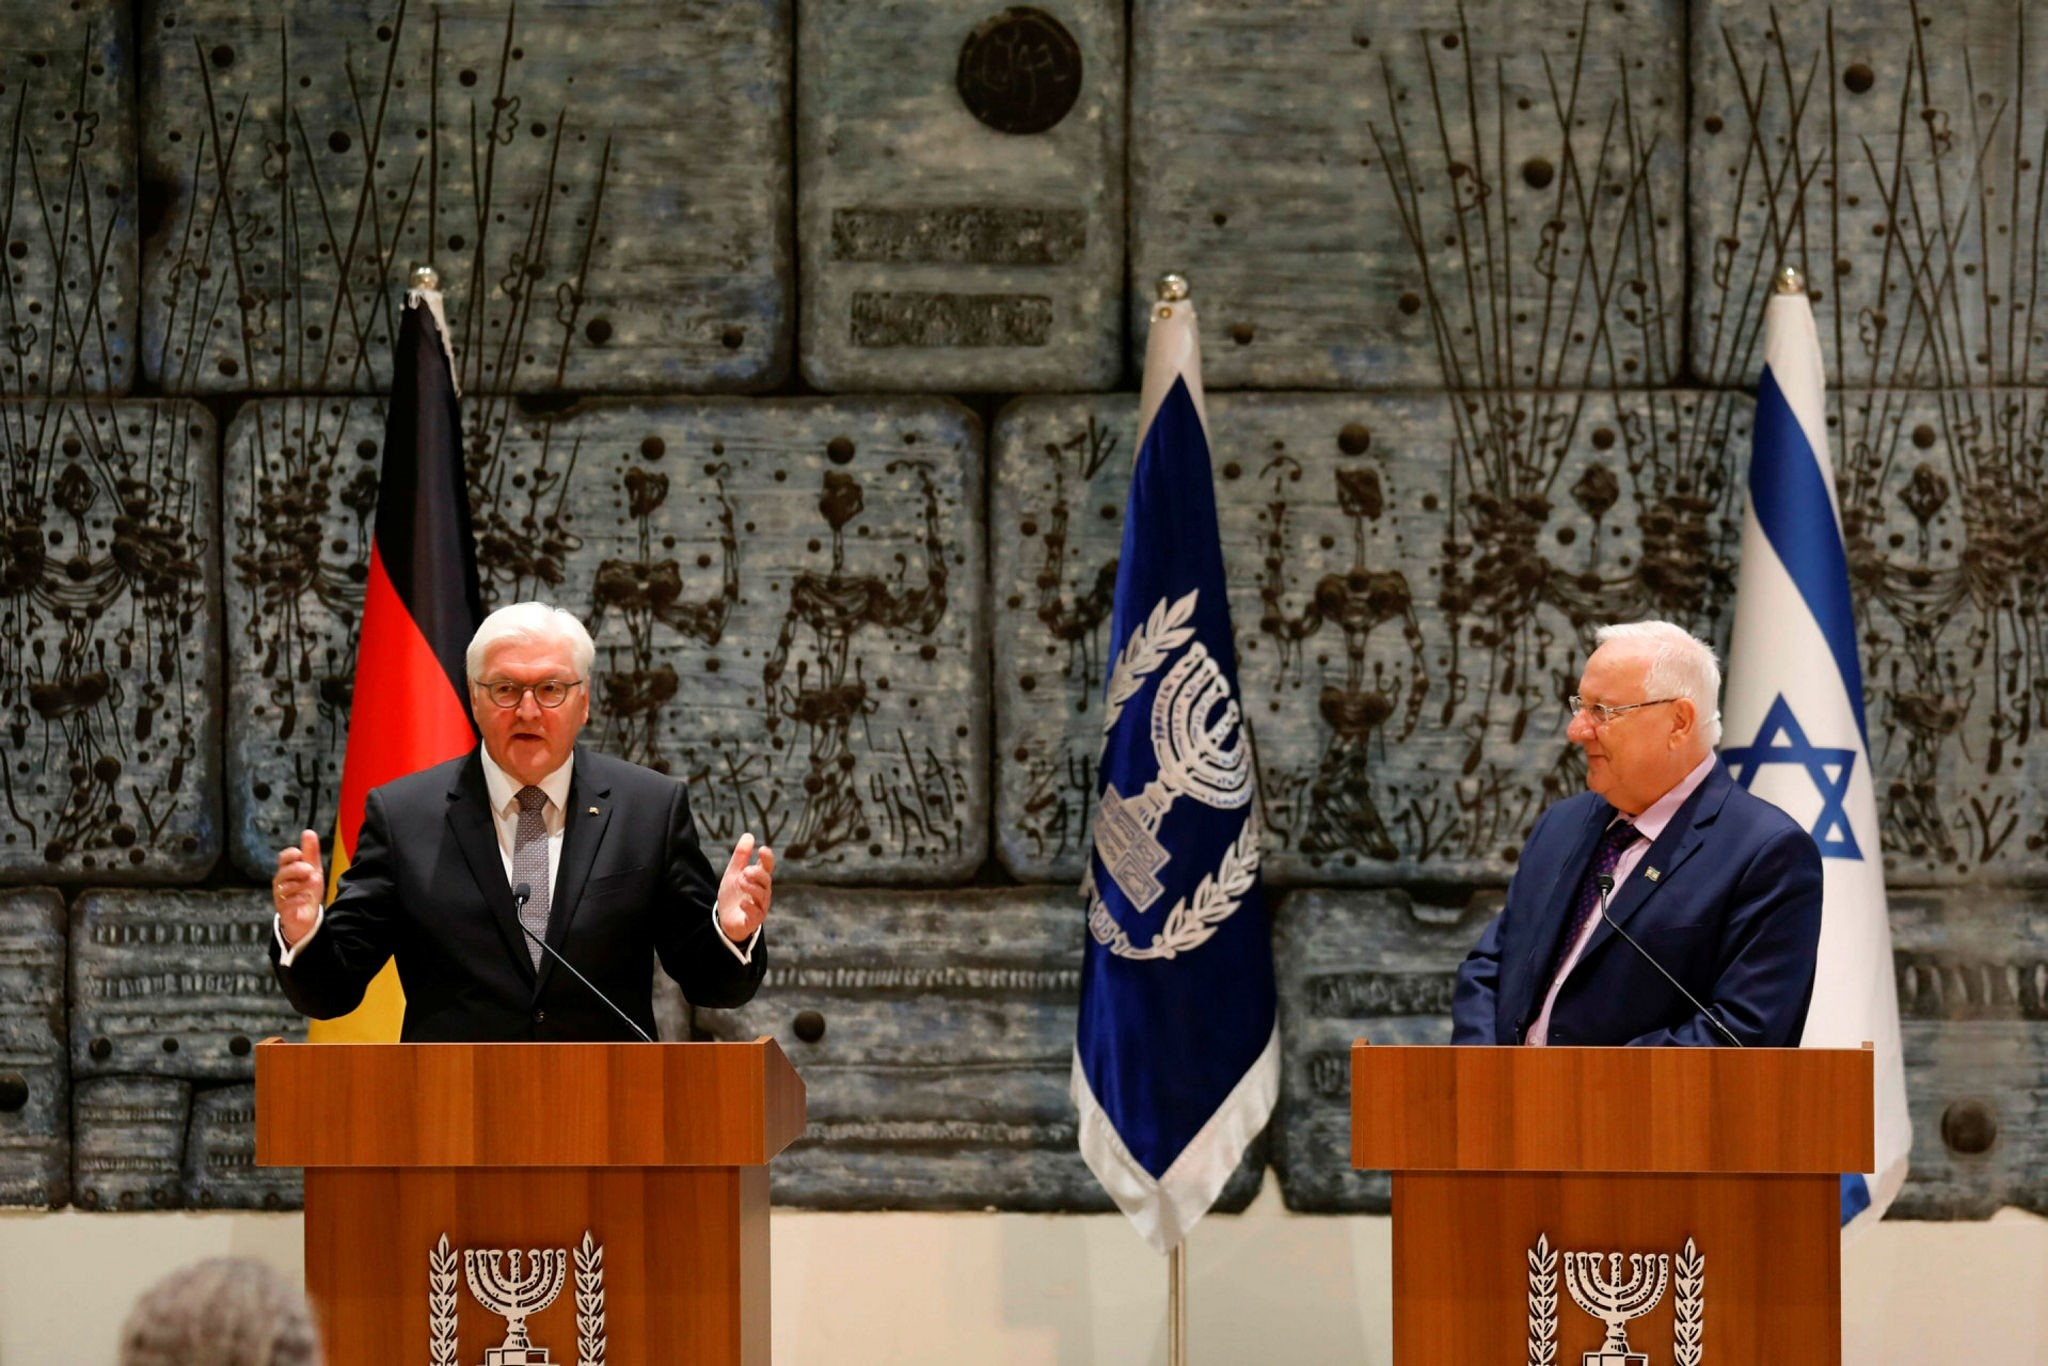 German President Frank-Walter Steinmeier speaks during a press conference with his Israeli counterpart Reuven Rivlin at the presidential compound in Jerusalem on May 7.